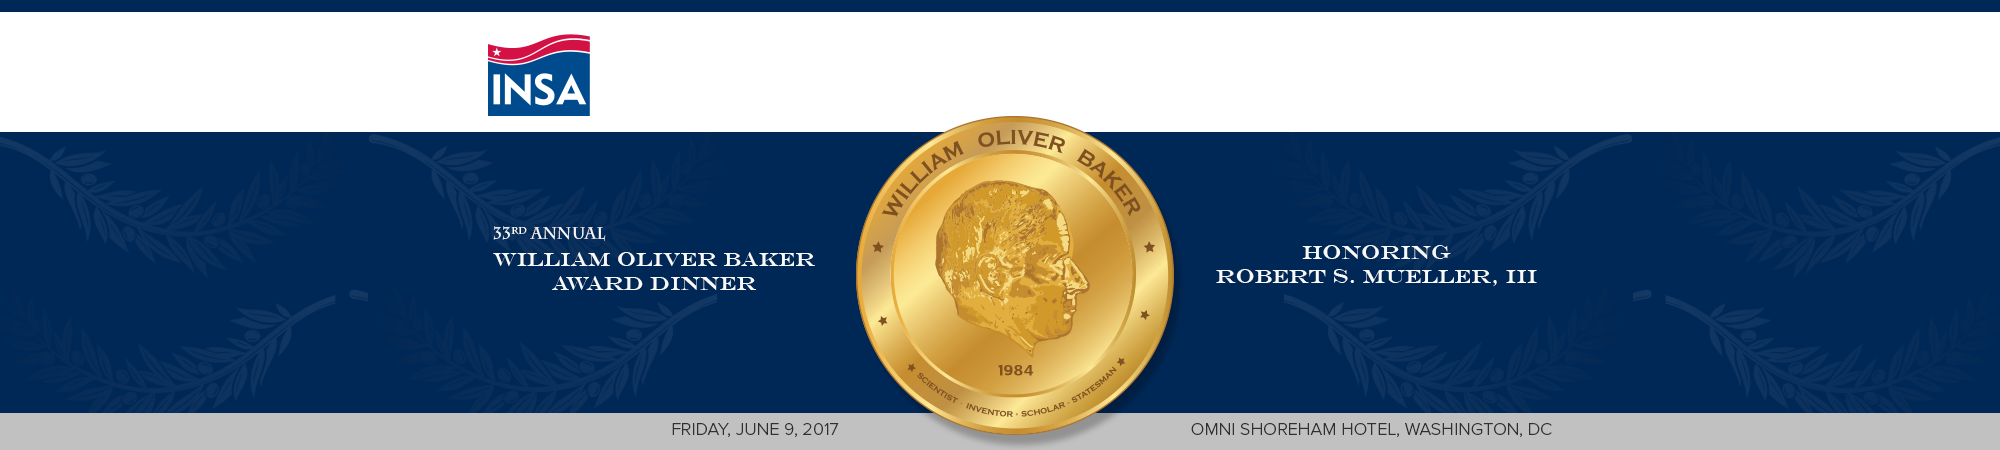 33rd William Oliver Baker Award Dinner